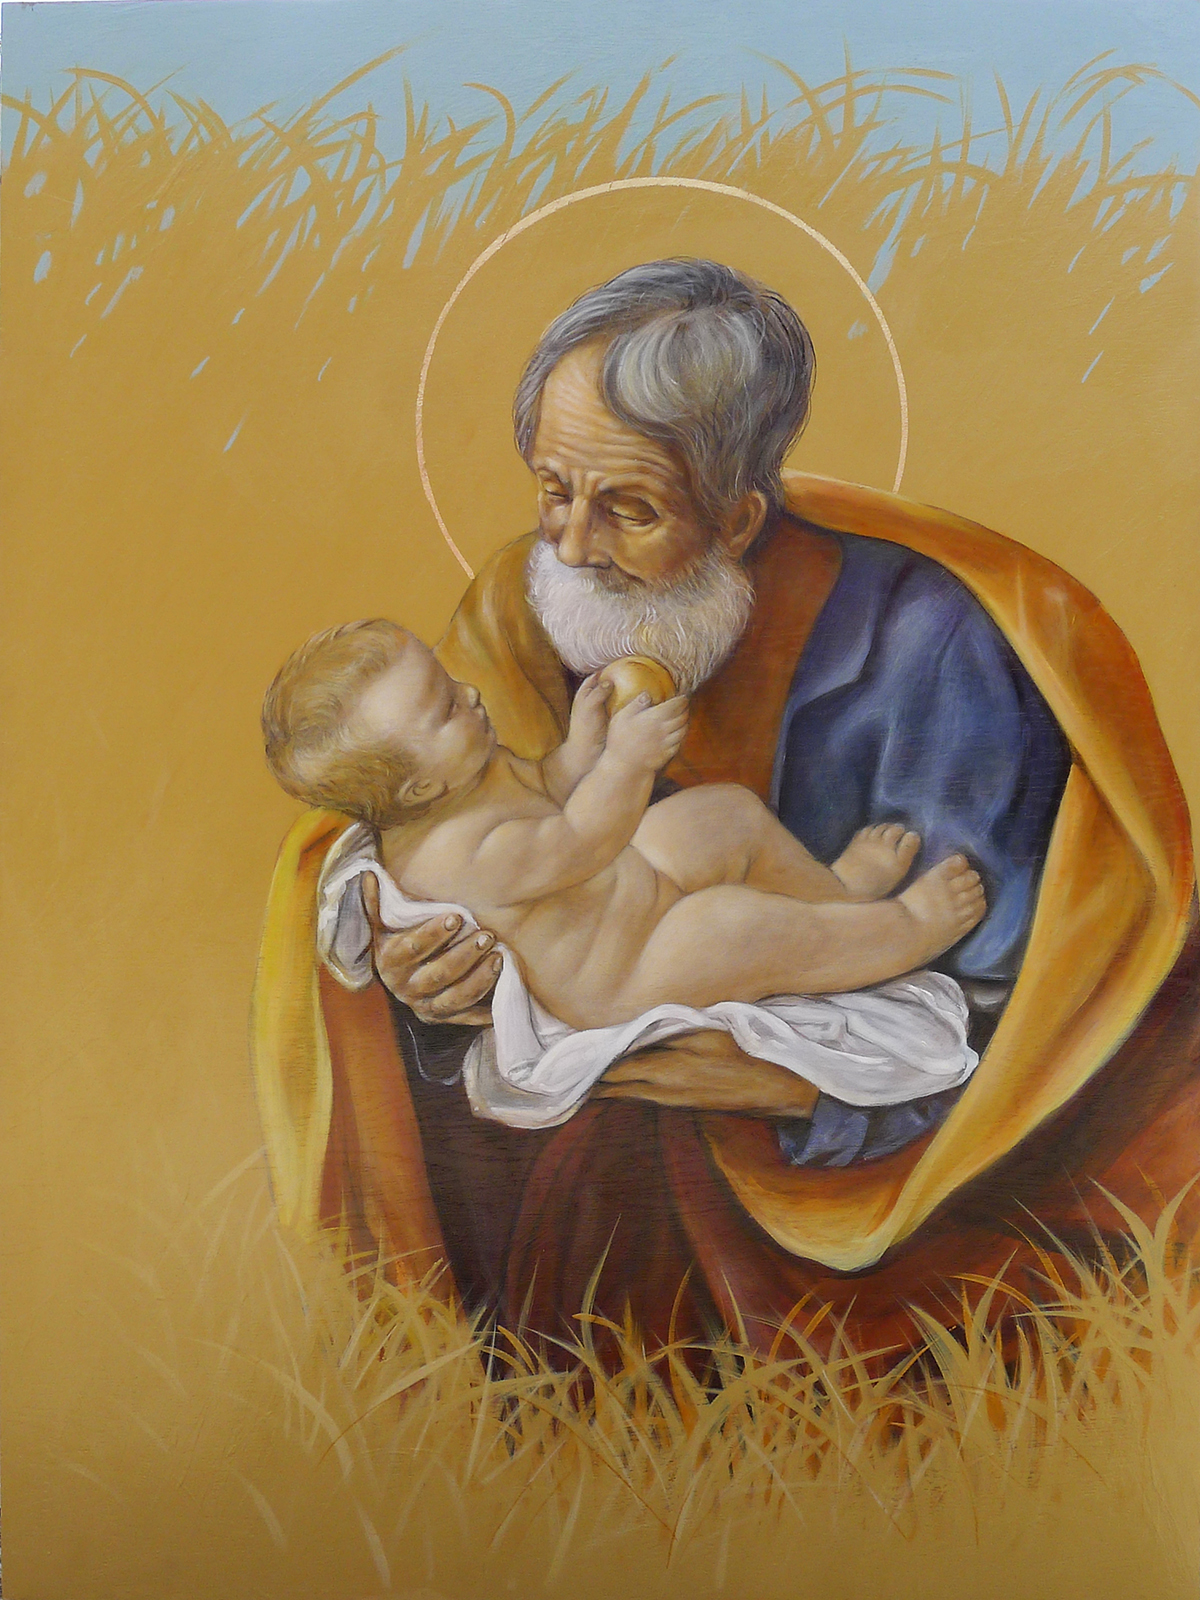 St. Joseph Commission